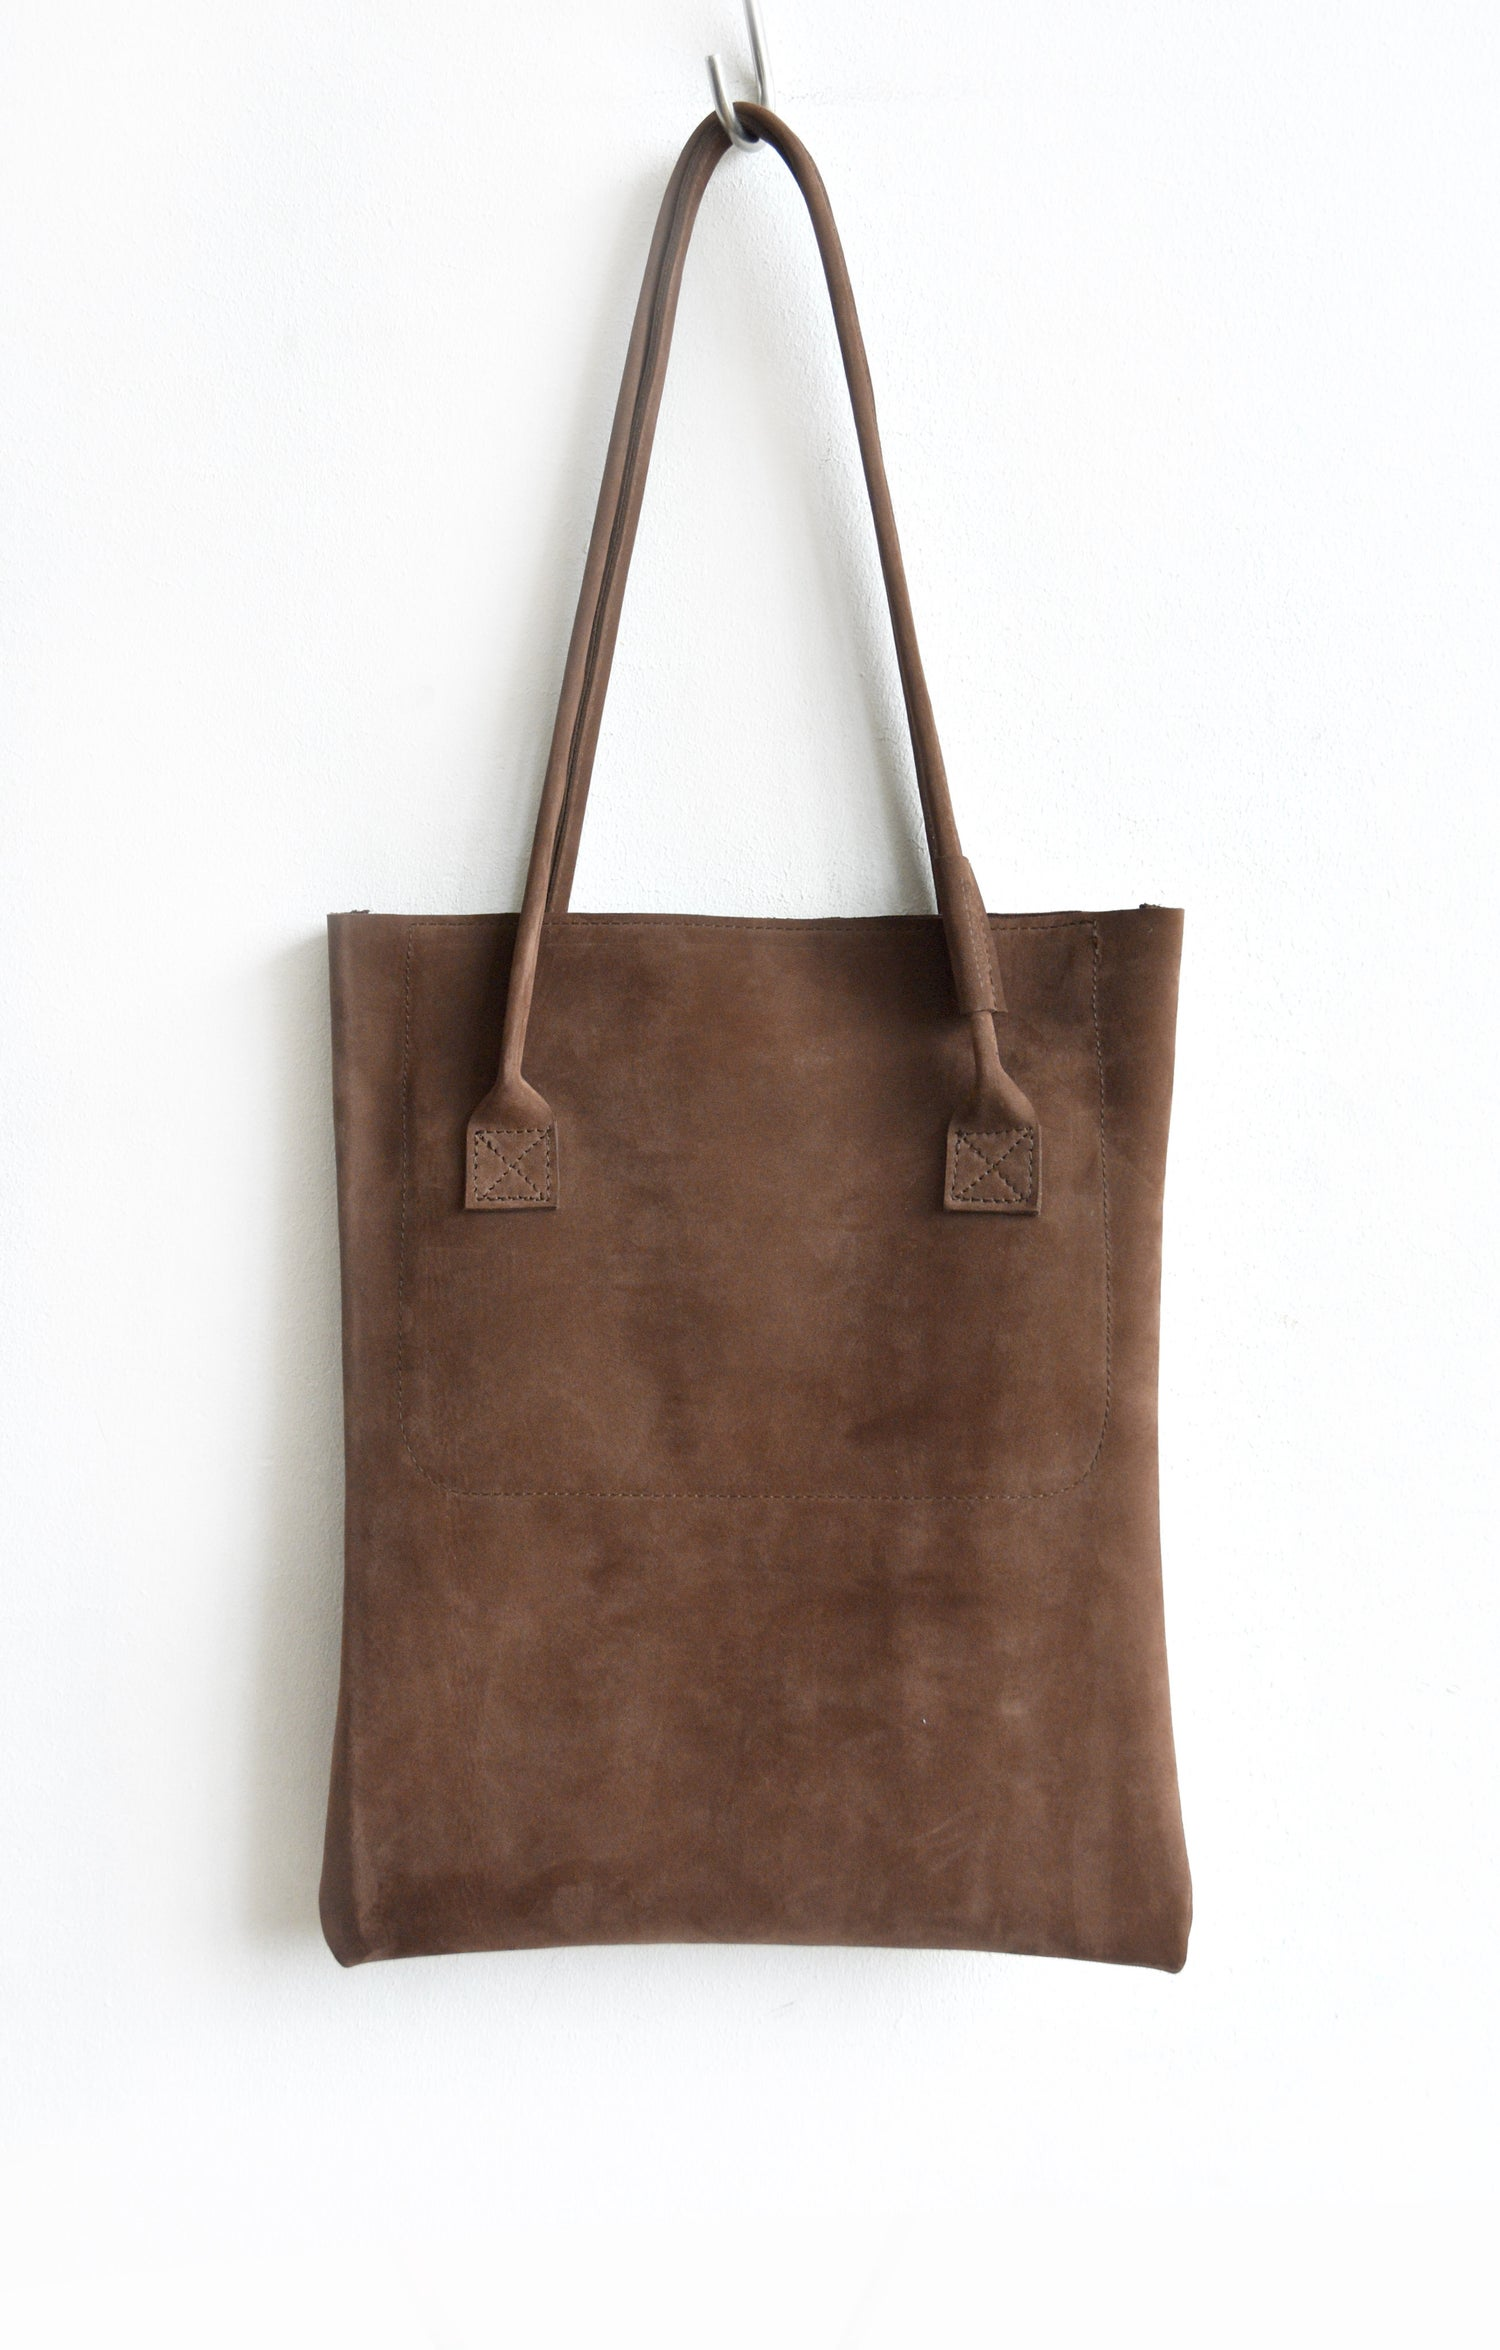 Image of Hazelnut Leather Tote Bag, Brown Suede Leather Bag